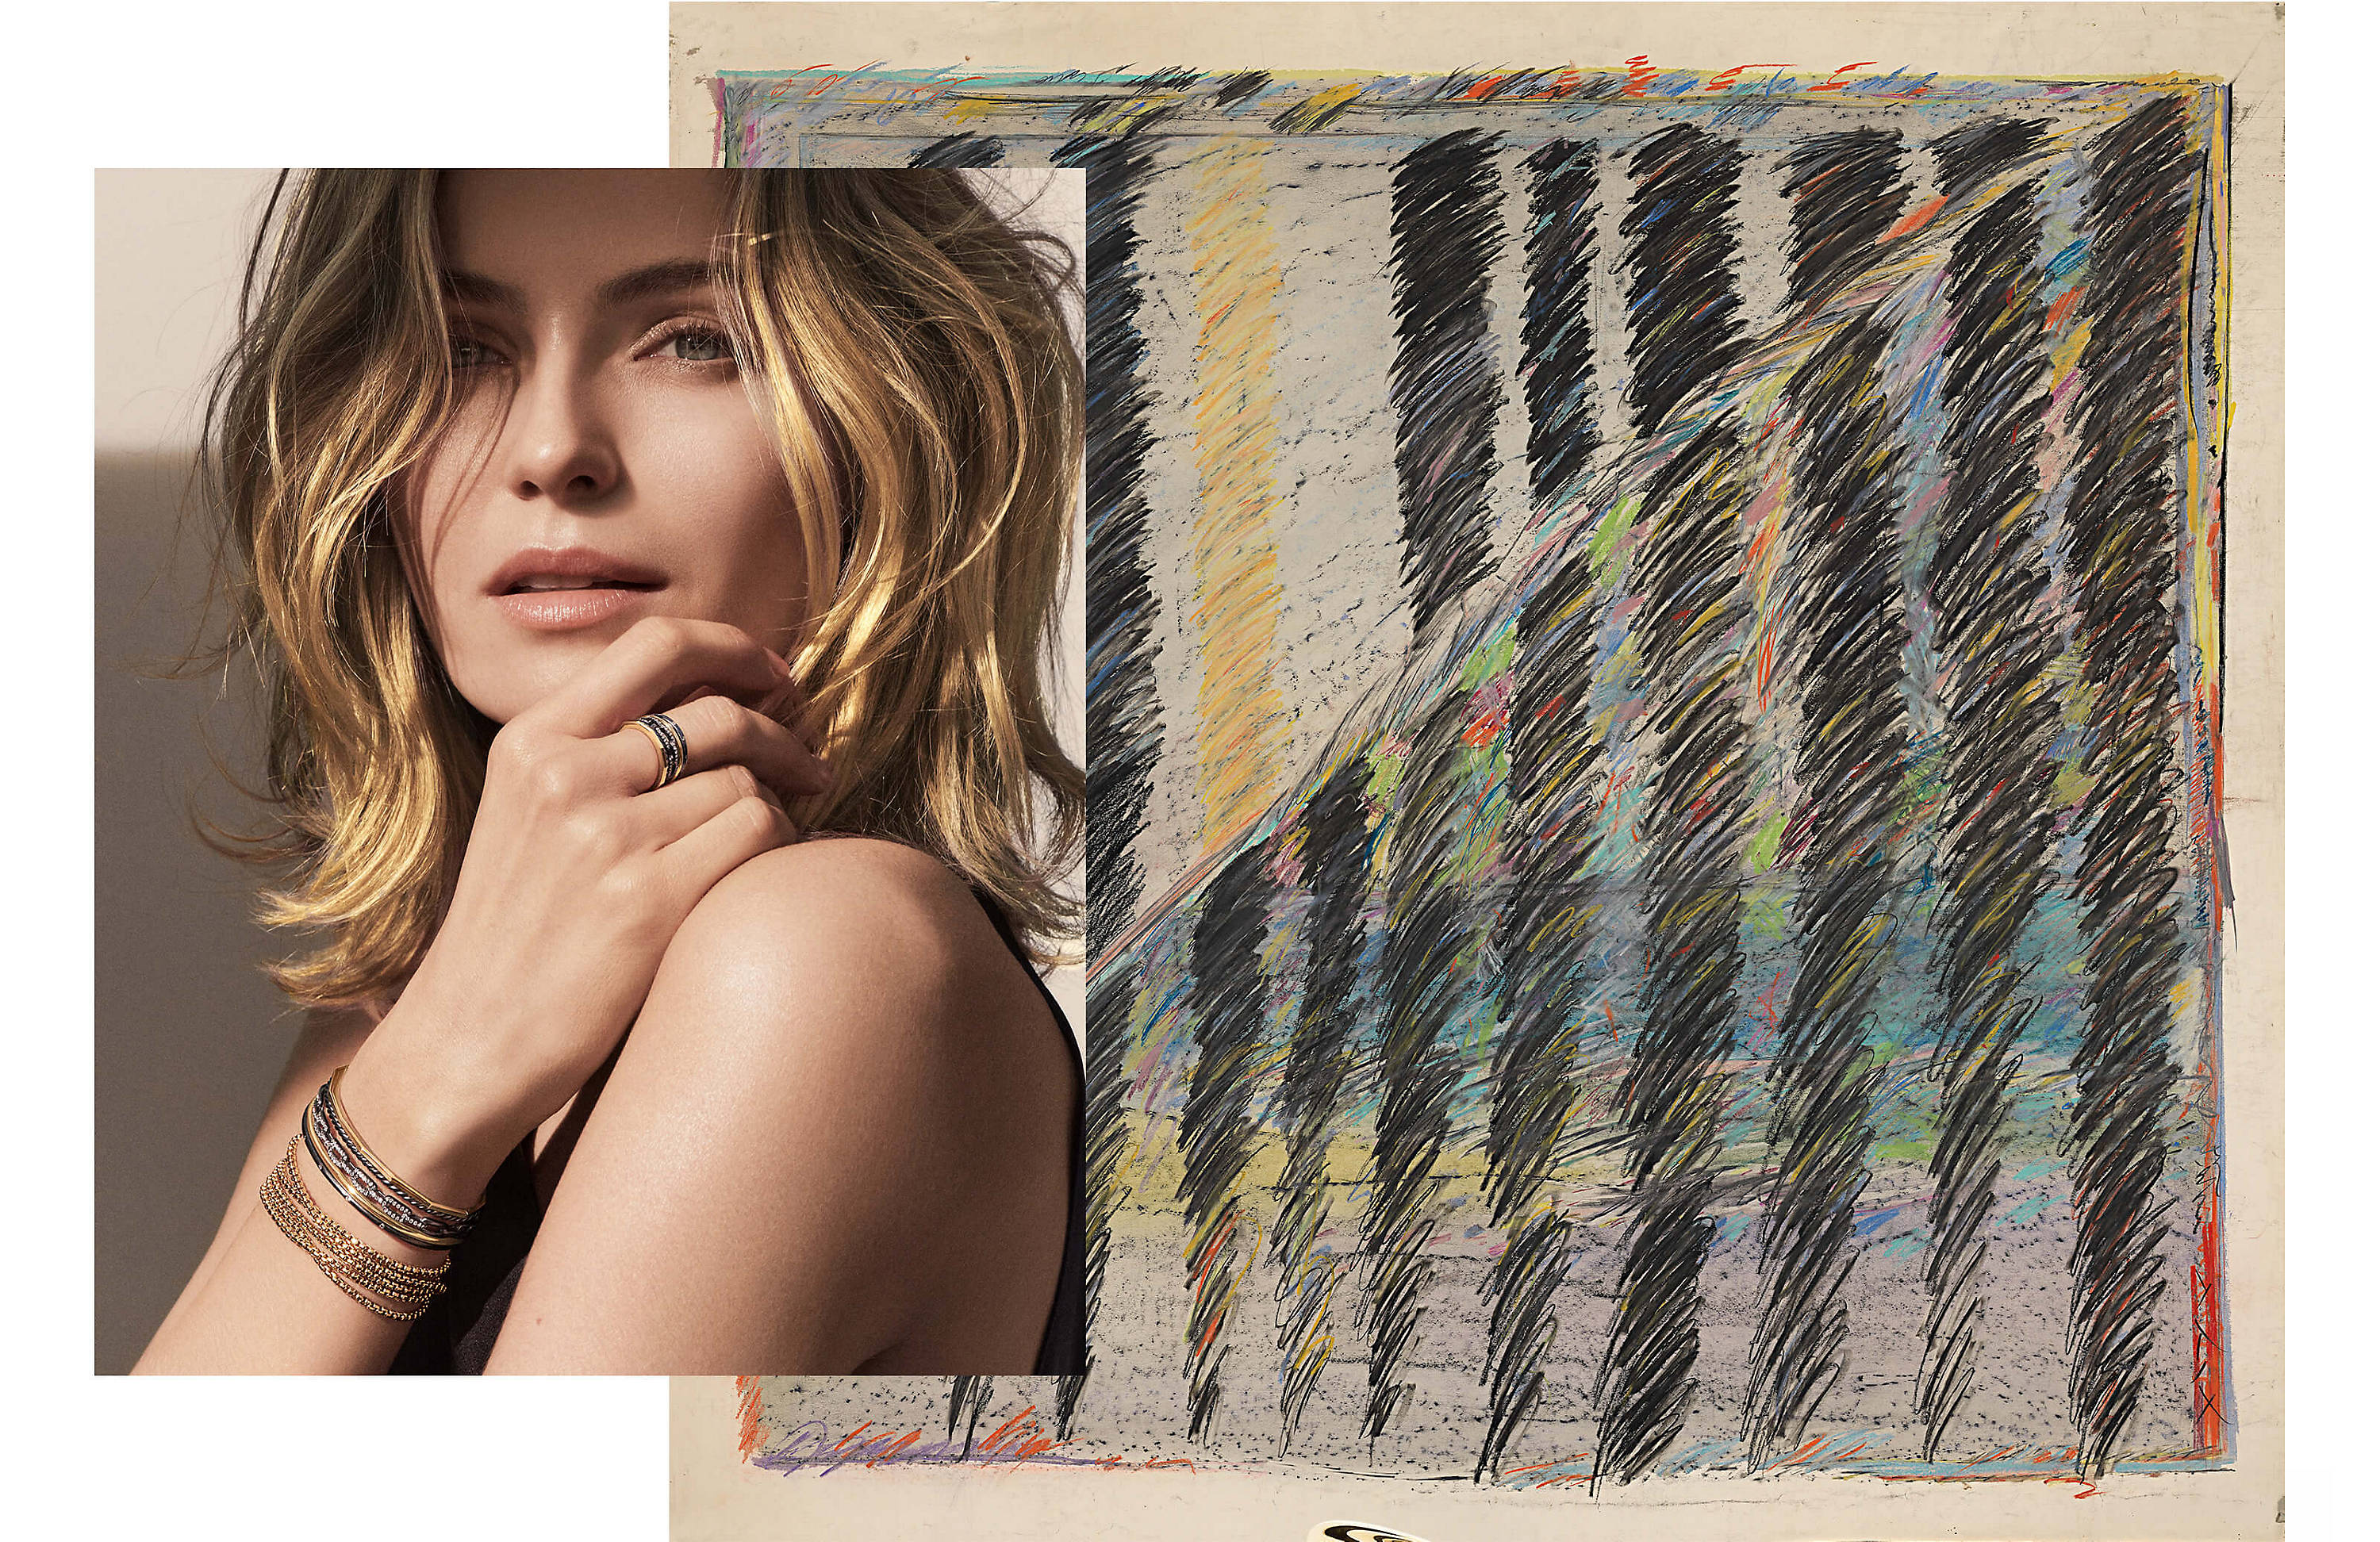 "A color photograph showing a woman wearing David Yurman jewelry is overlaid over the left side of an abstract, colorful scribble painting. The woman is seen in the light with shadows across her forehead and behind her, and has her hair parted to frame her face and her right arm crossed so her right hand is resting on her left shoulder. She is wearing a Stax multi-row ring, a Stax multi-row bracelet, and a Chain necklace as a bracelet. The jewelry is crafted from 18K yellow gold or from blackened sterling silver with 18K yellow gold and pavé white diamonds. Under the corner of the painting is a caption that reads ""Untitled, mixed media, Sybil Yurman."""